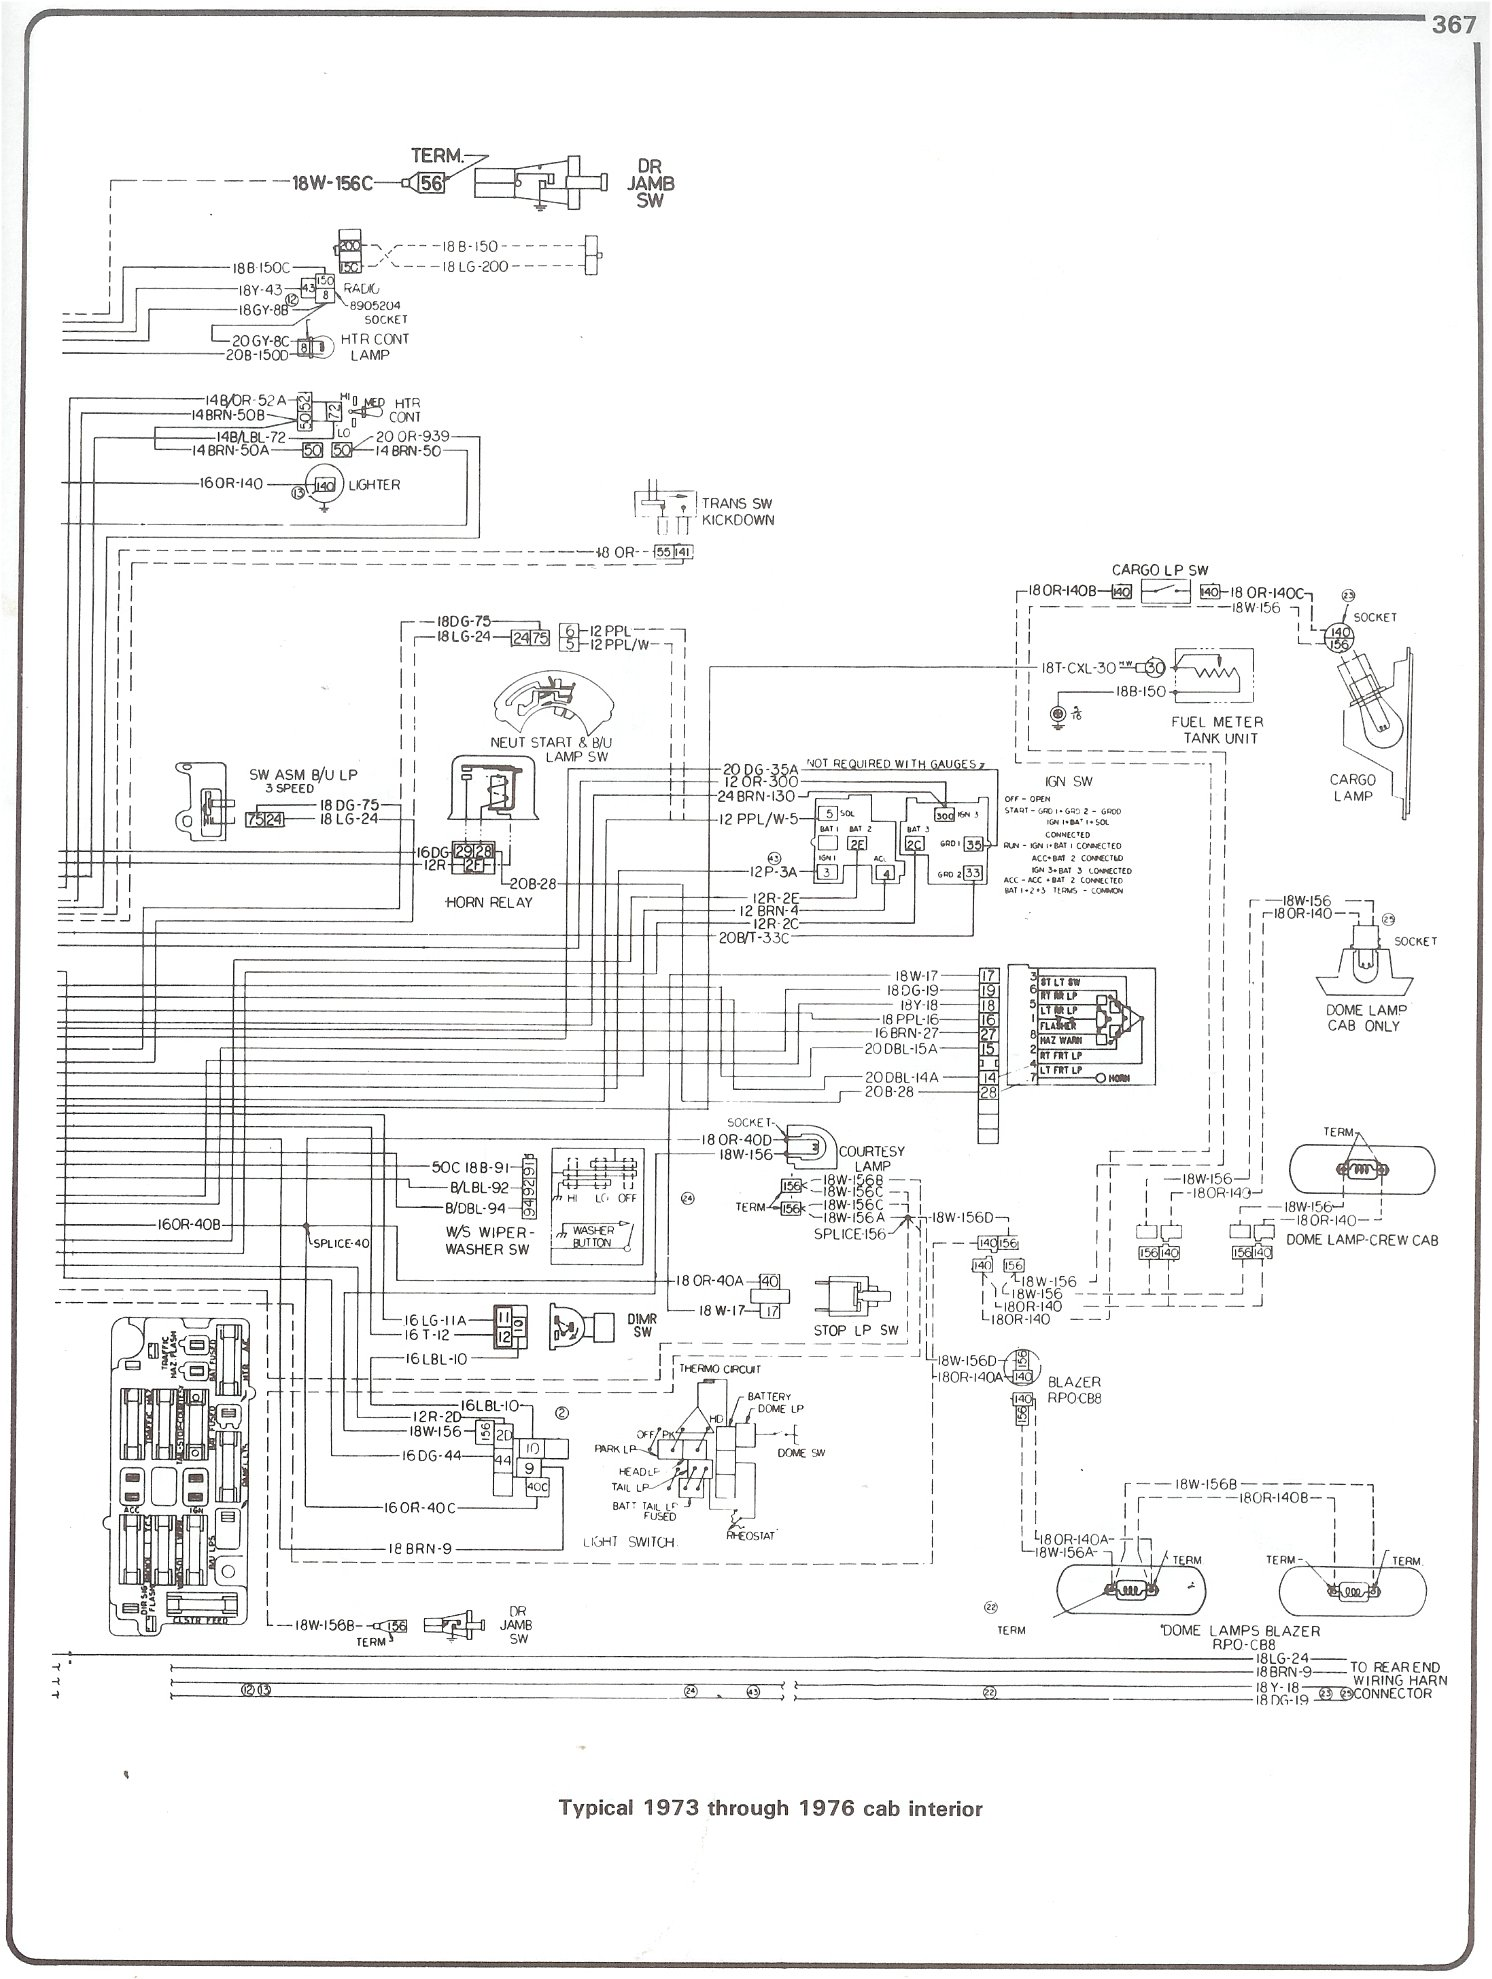 runner lights and gauge lights not working 1976 chevy truck wiring harness diagram chevy truck wiring harness diagram